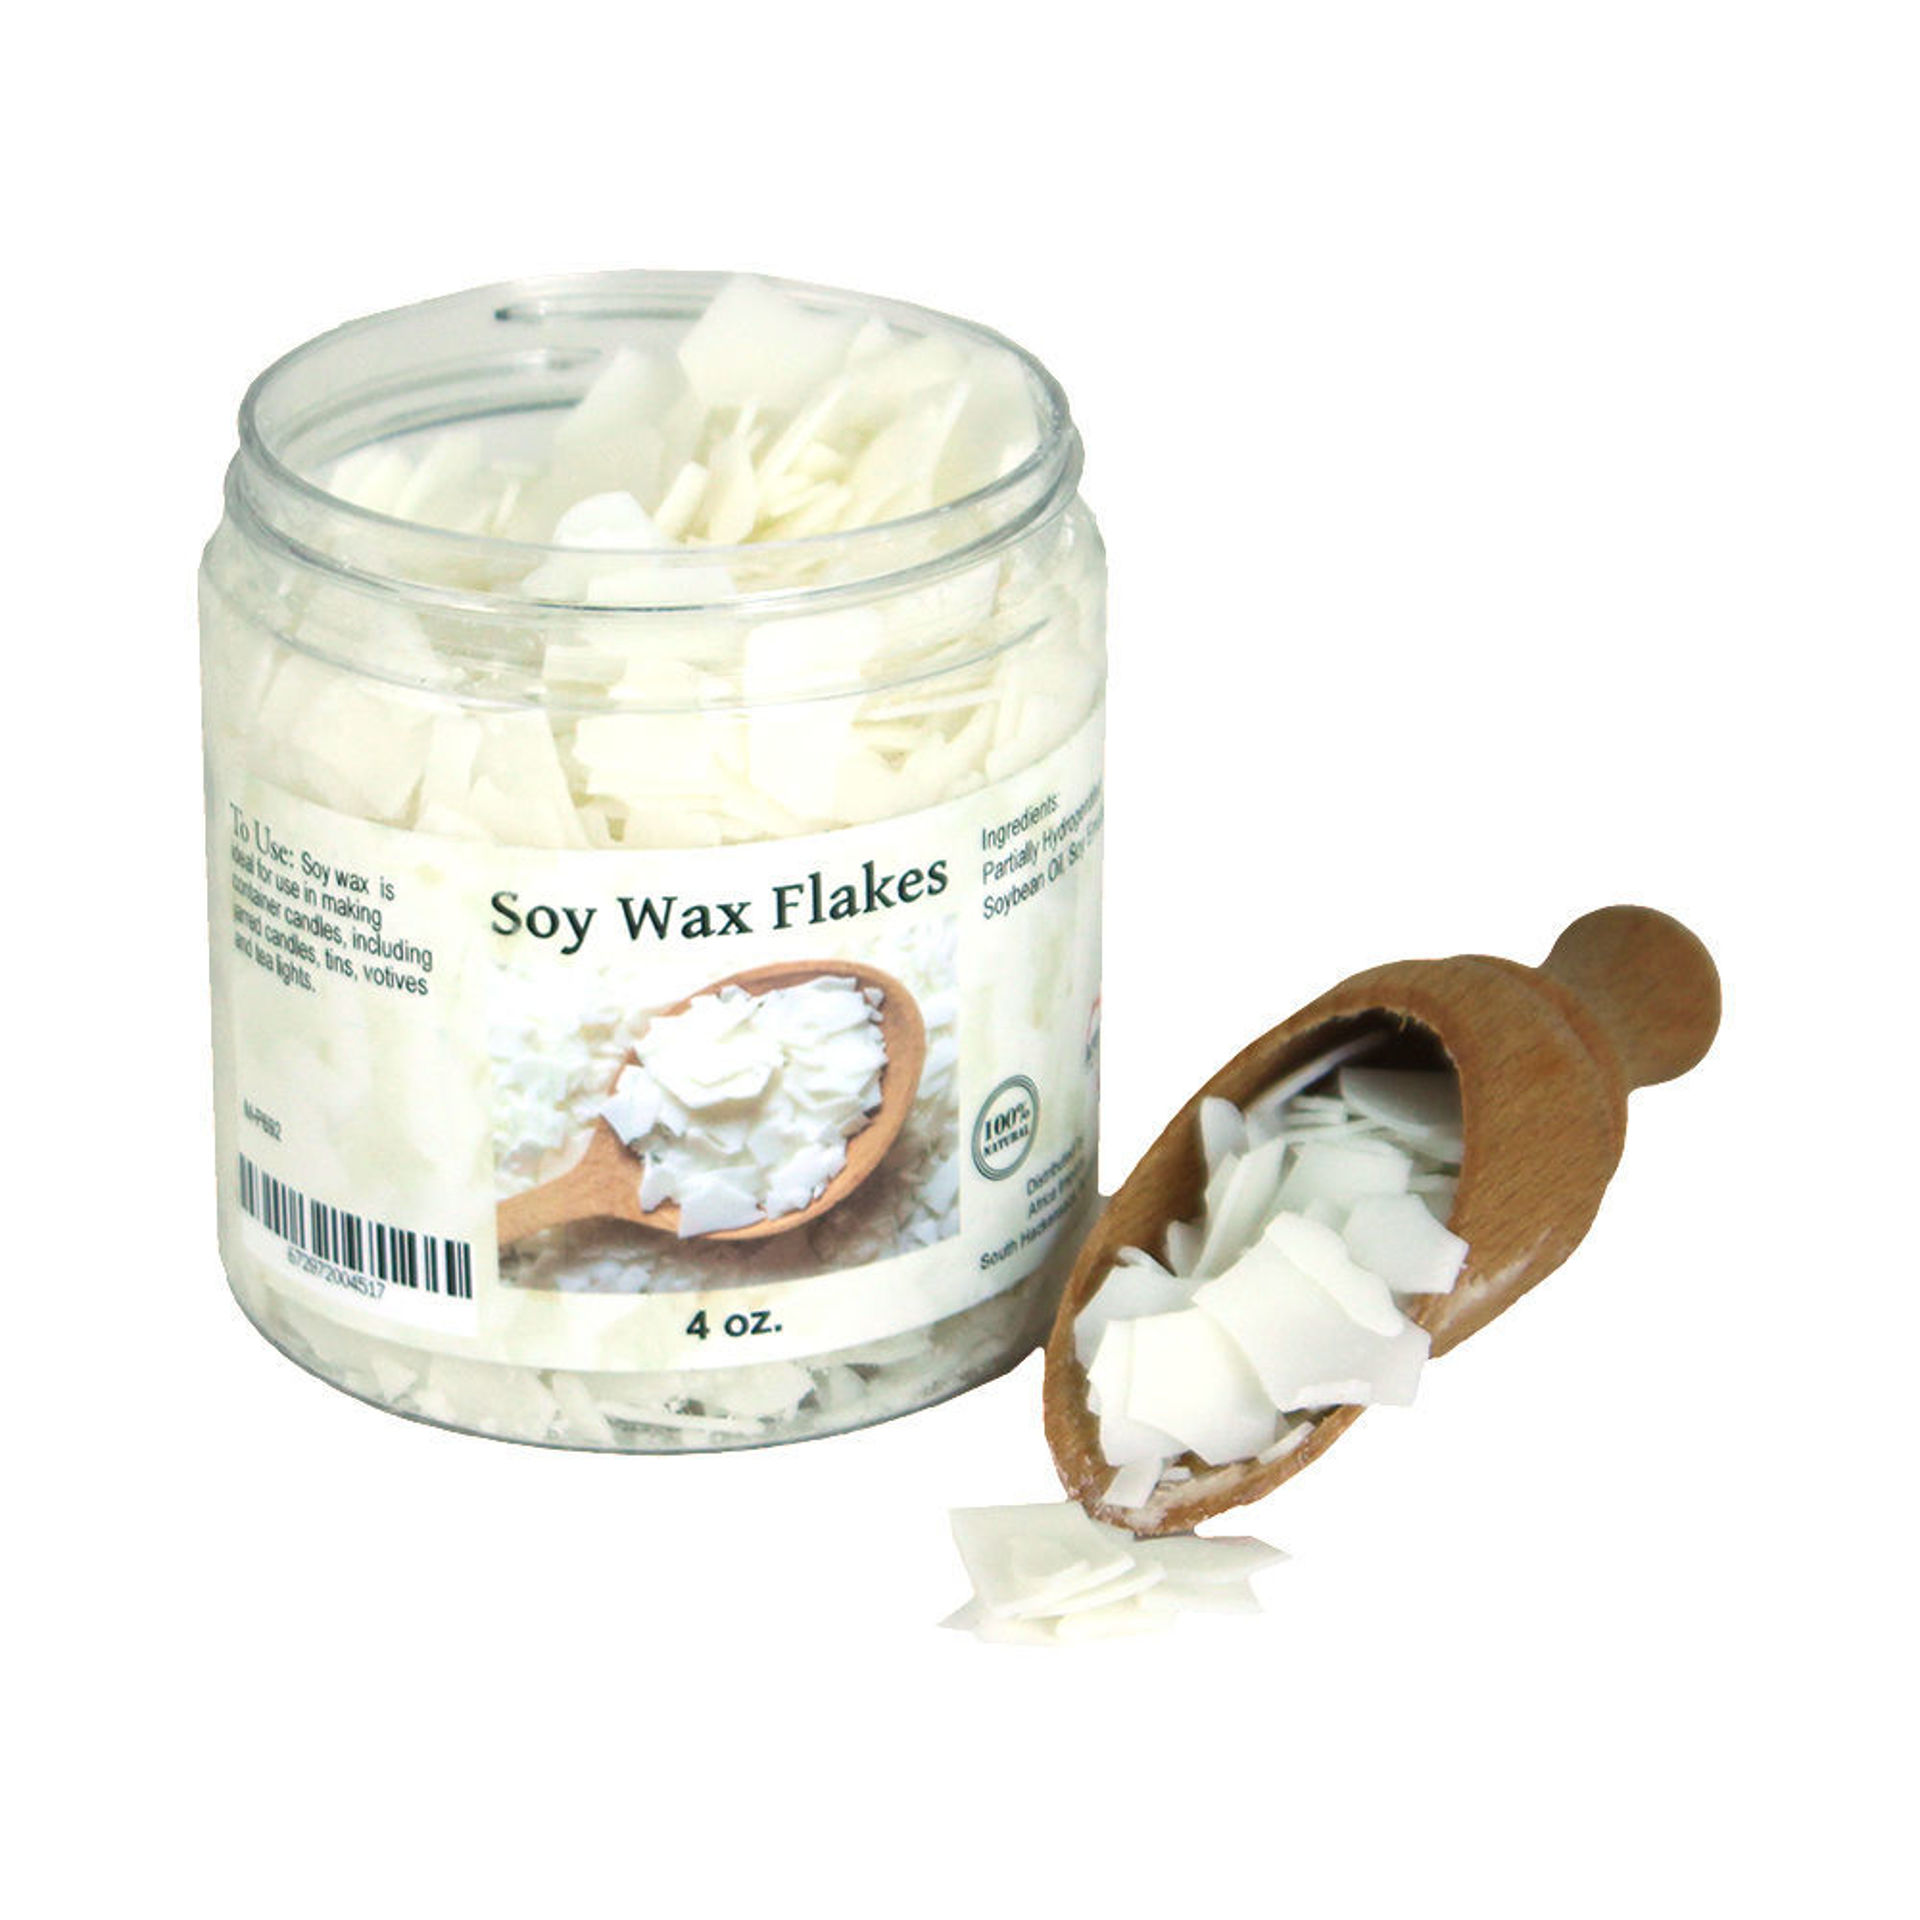 Picture of Soy Wax Flakes - 4 oz.